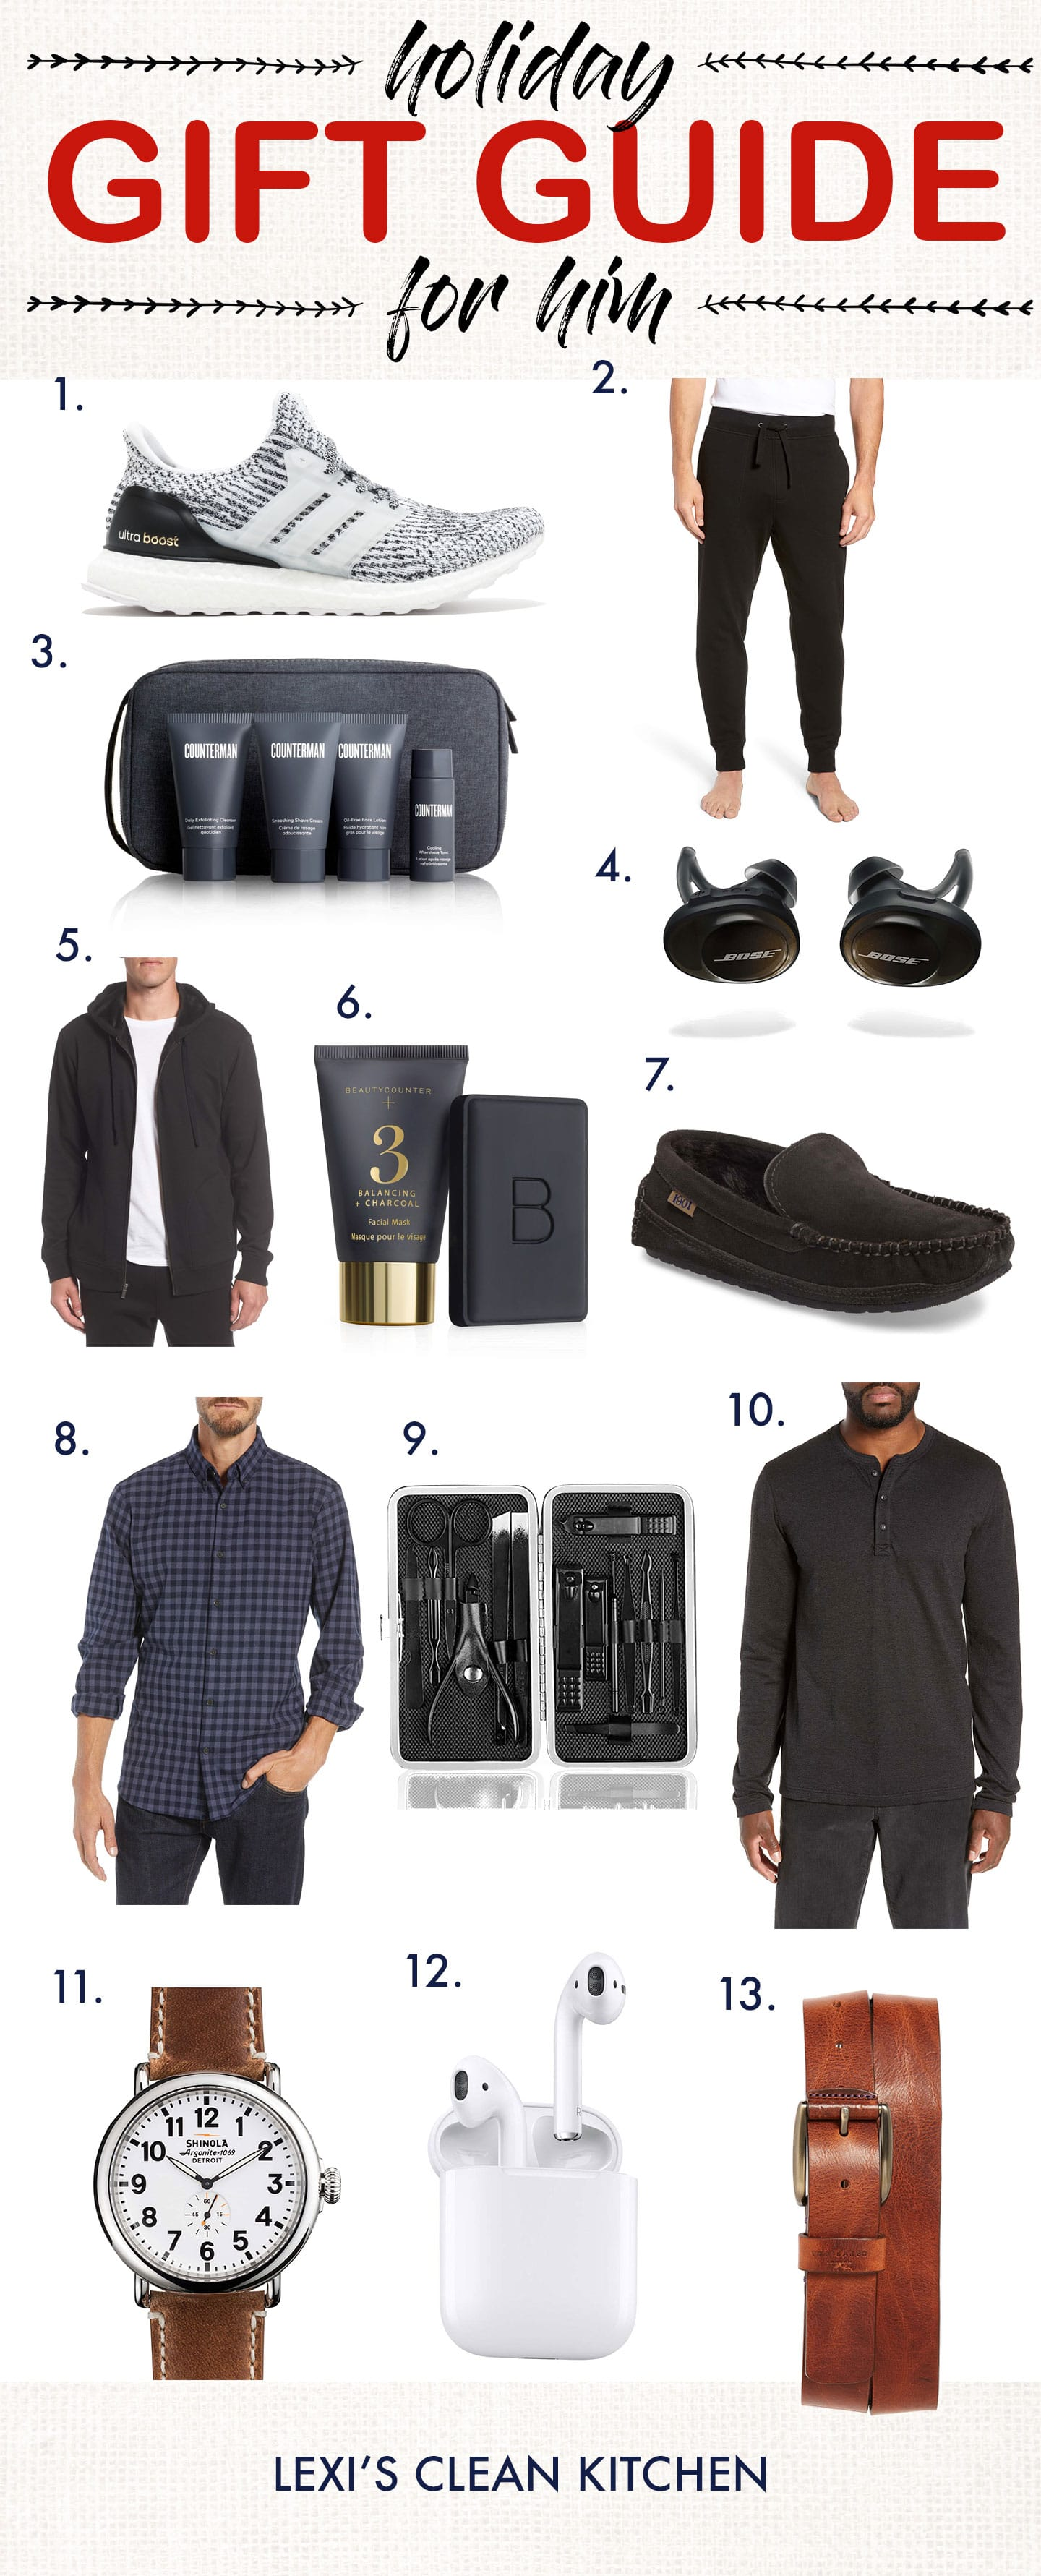 Holiday Gift Guide For HIM 2018